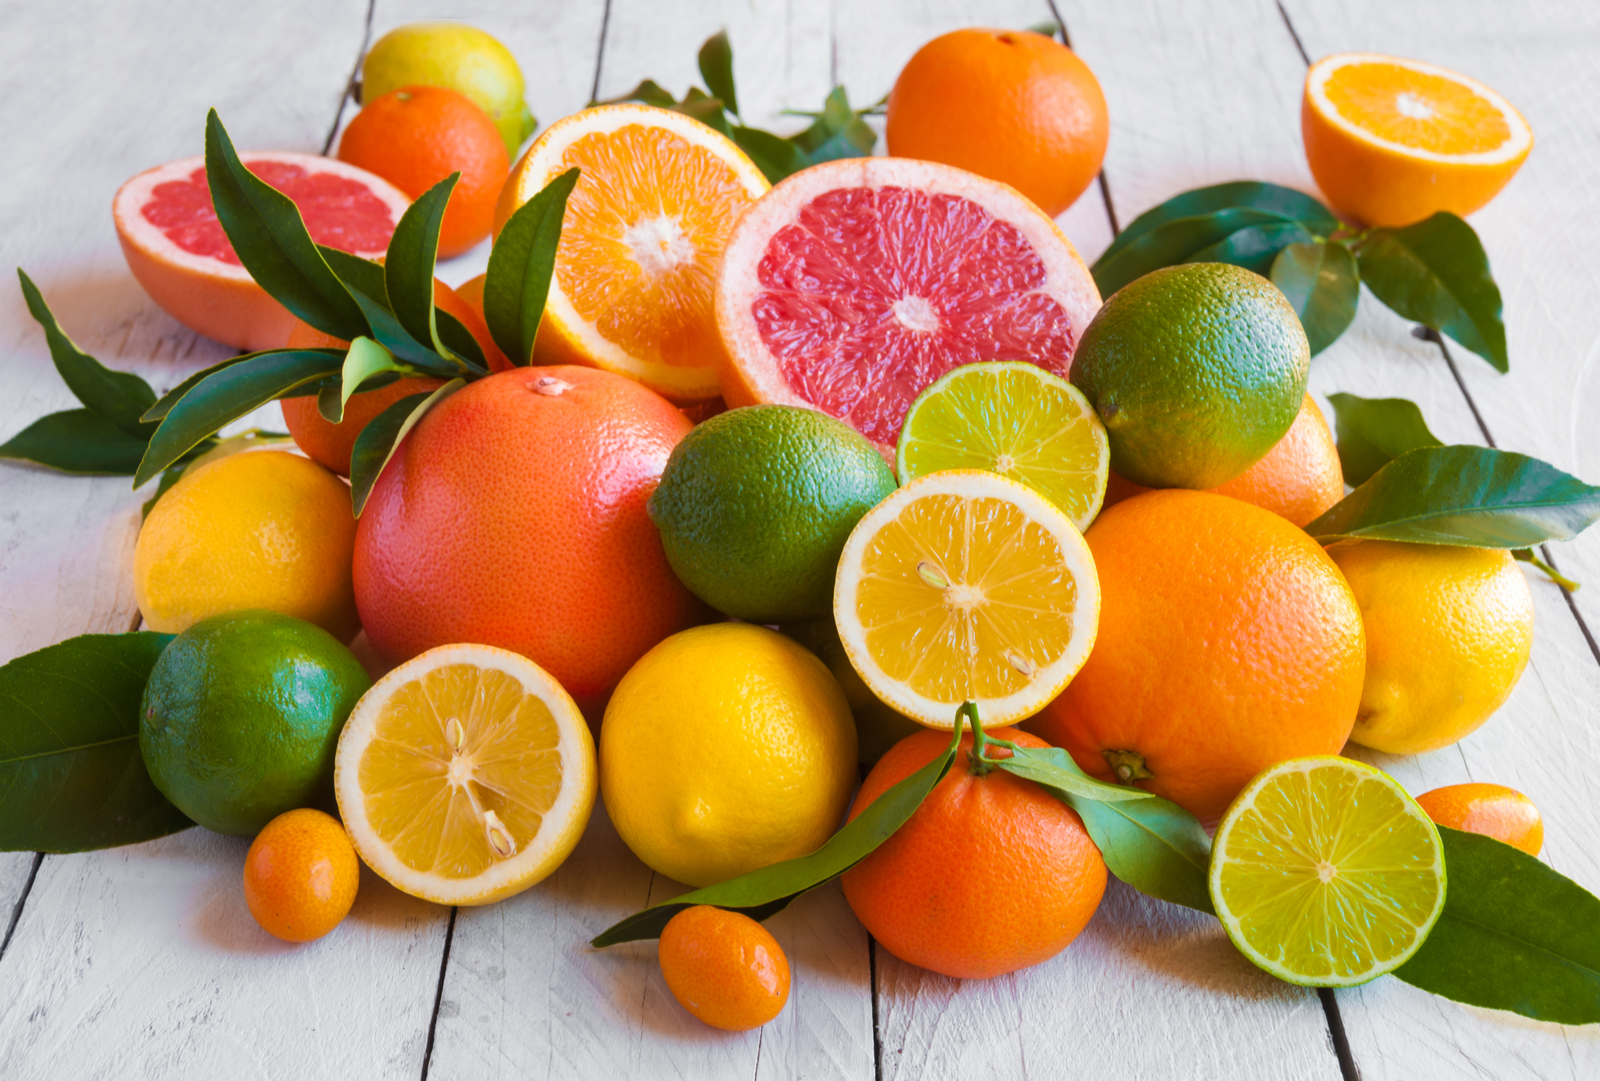 Citrus Bliss Juice | 4 Delicious Juicing Recipes That Are Great For Weight Loss